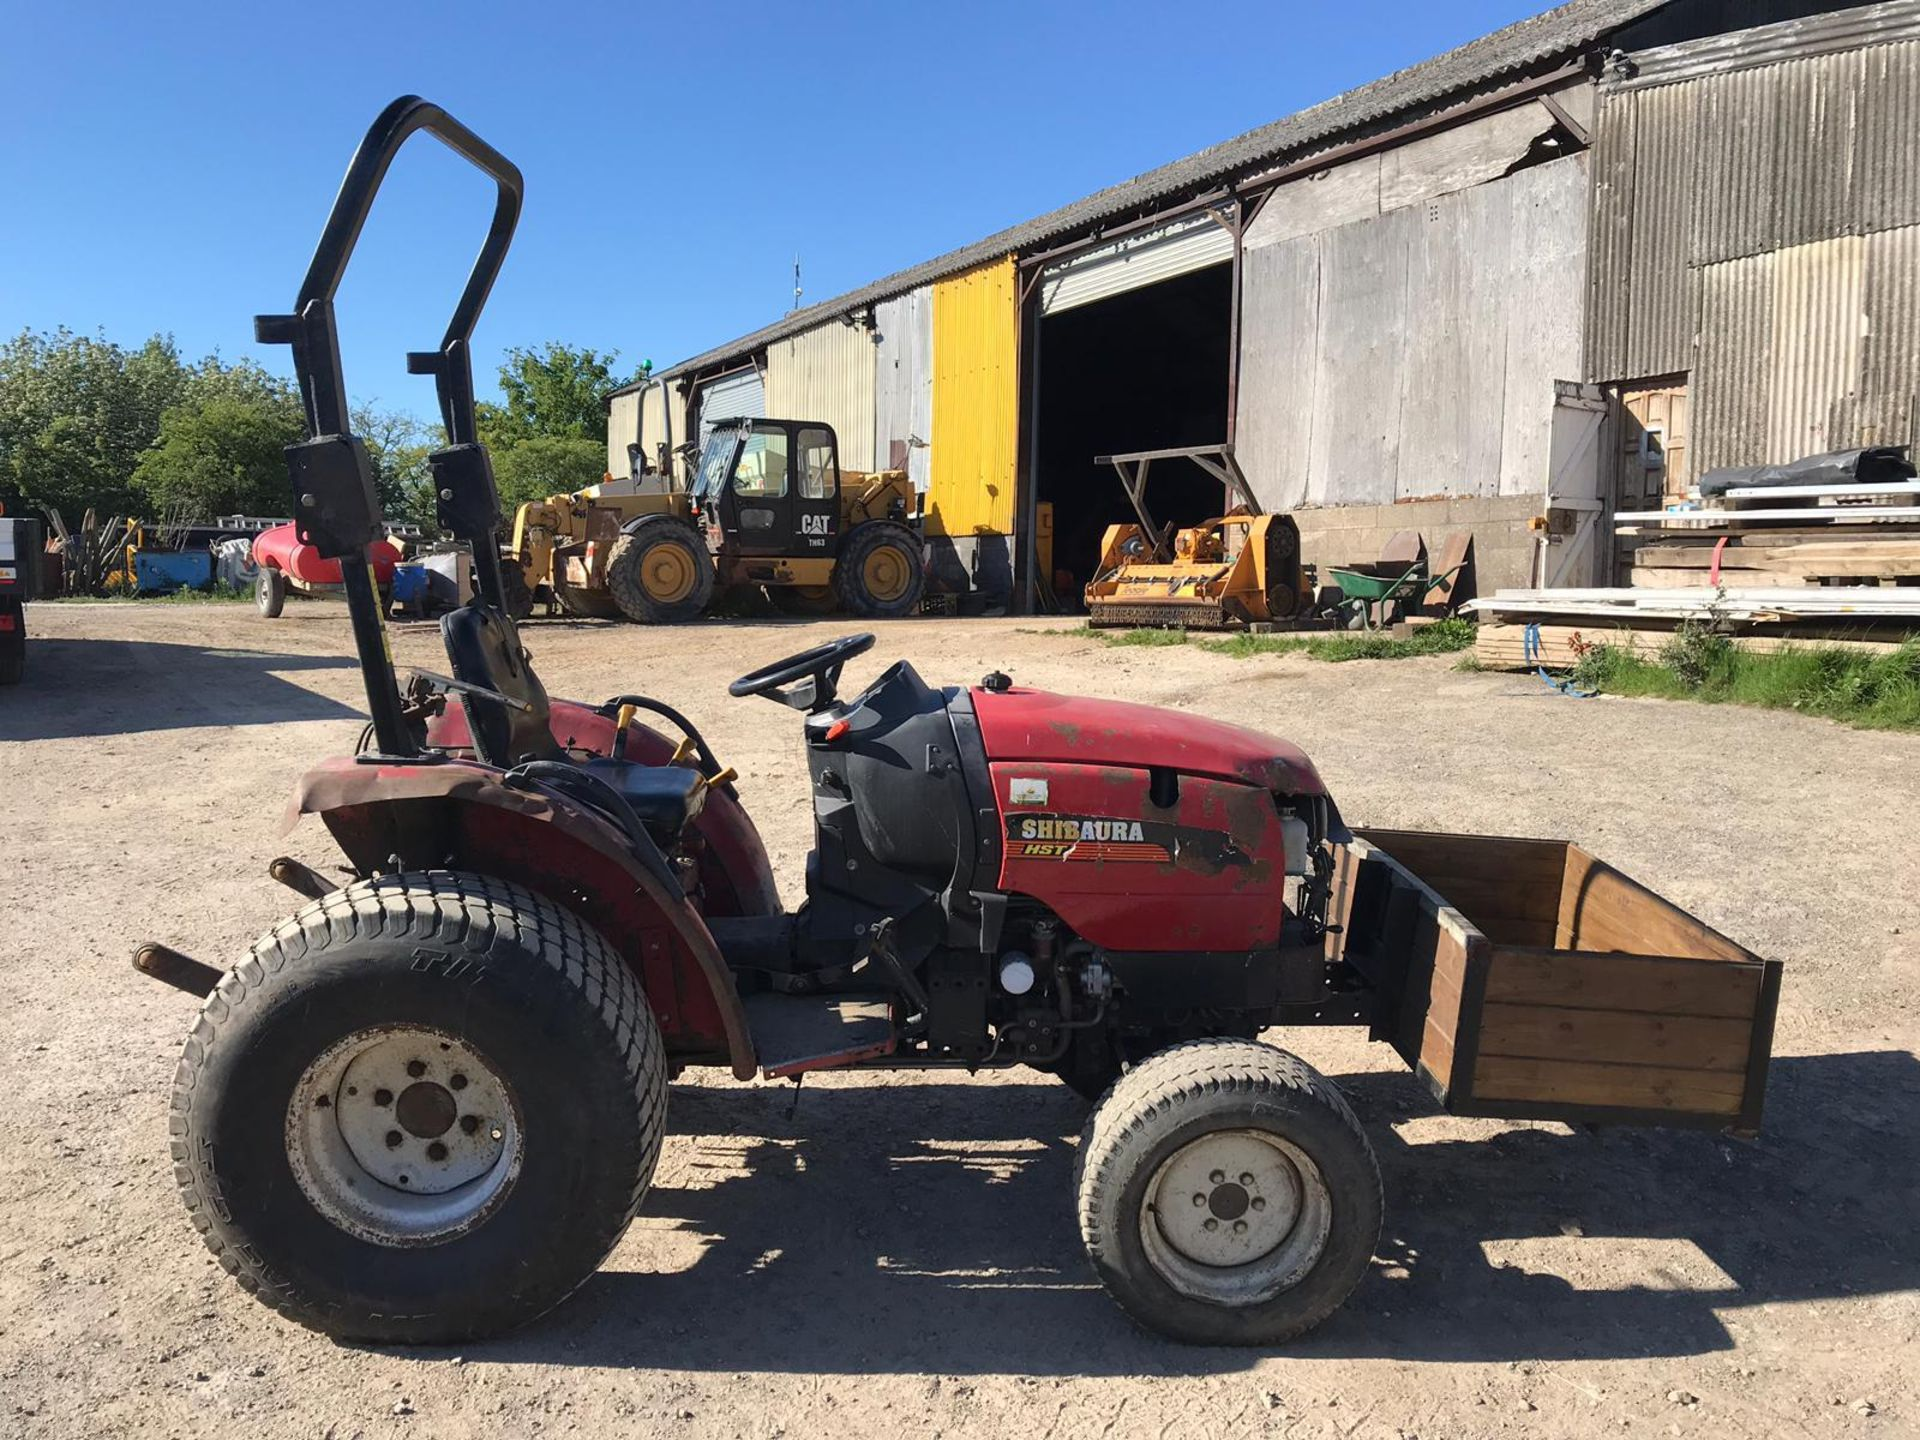 SHIRBAURA ST333 4WD COMPACT HST TRACTOR C/W ROLL BAR *PLUS VAT* - Image 5 of 8